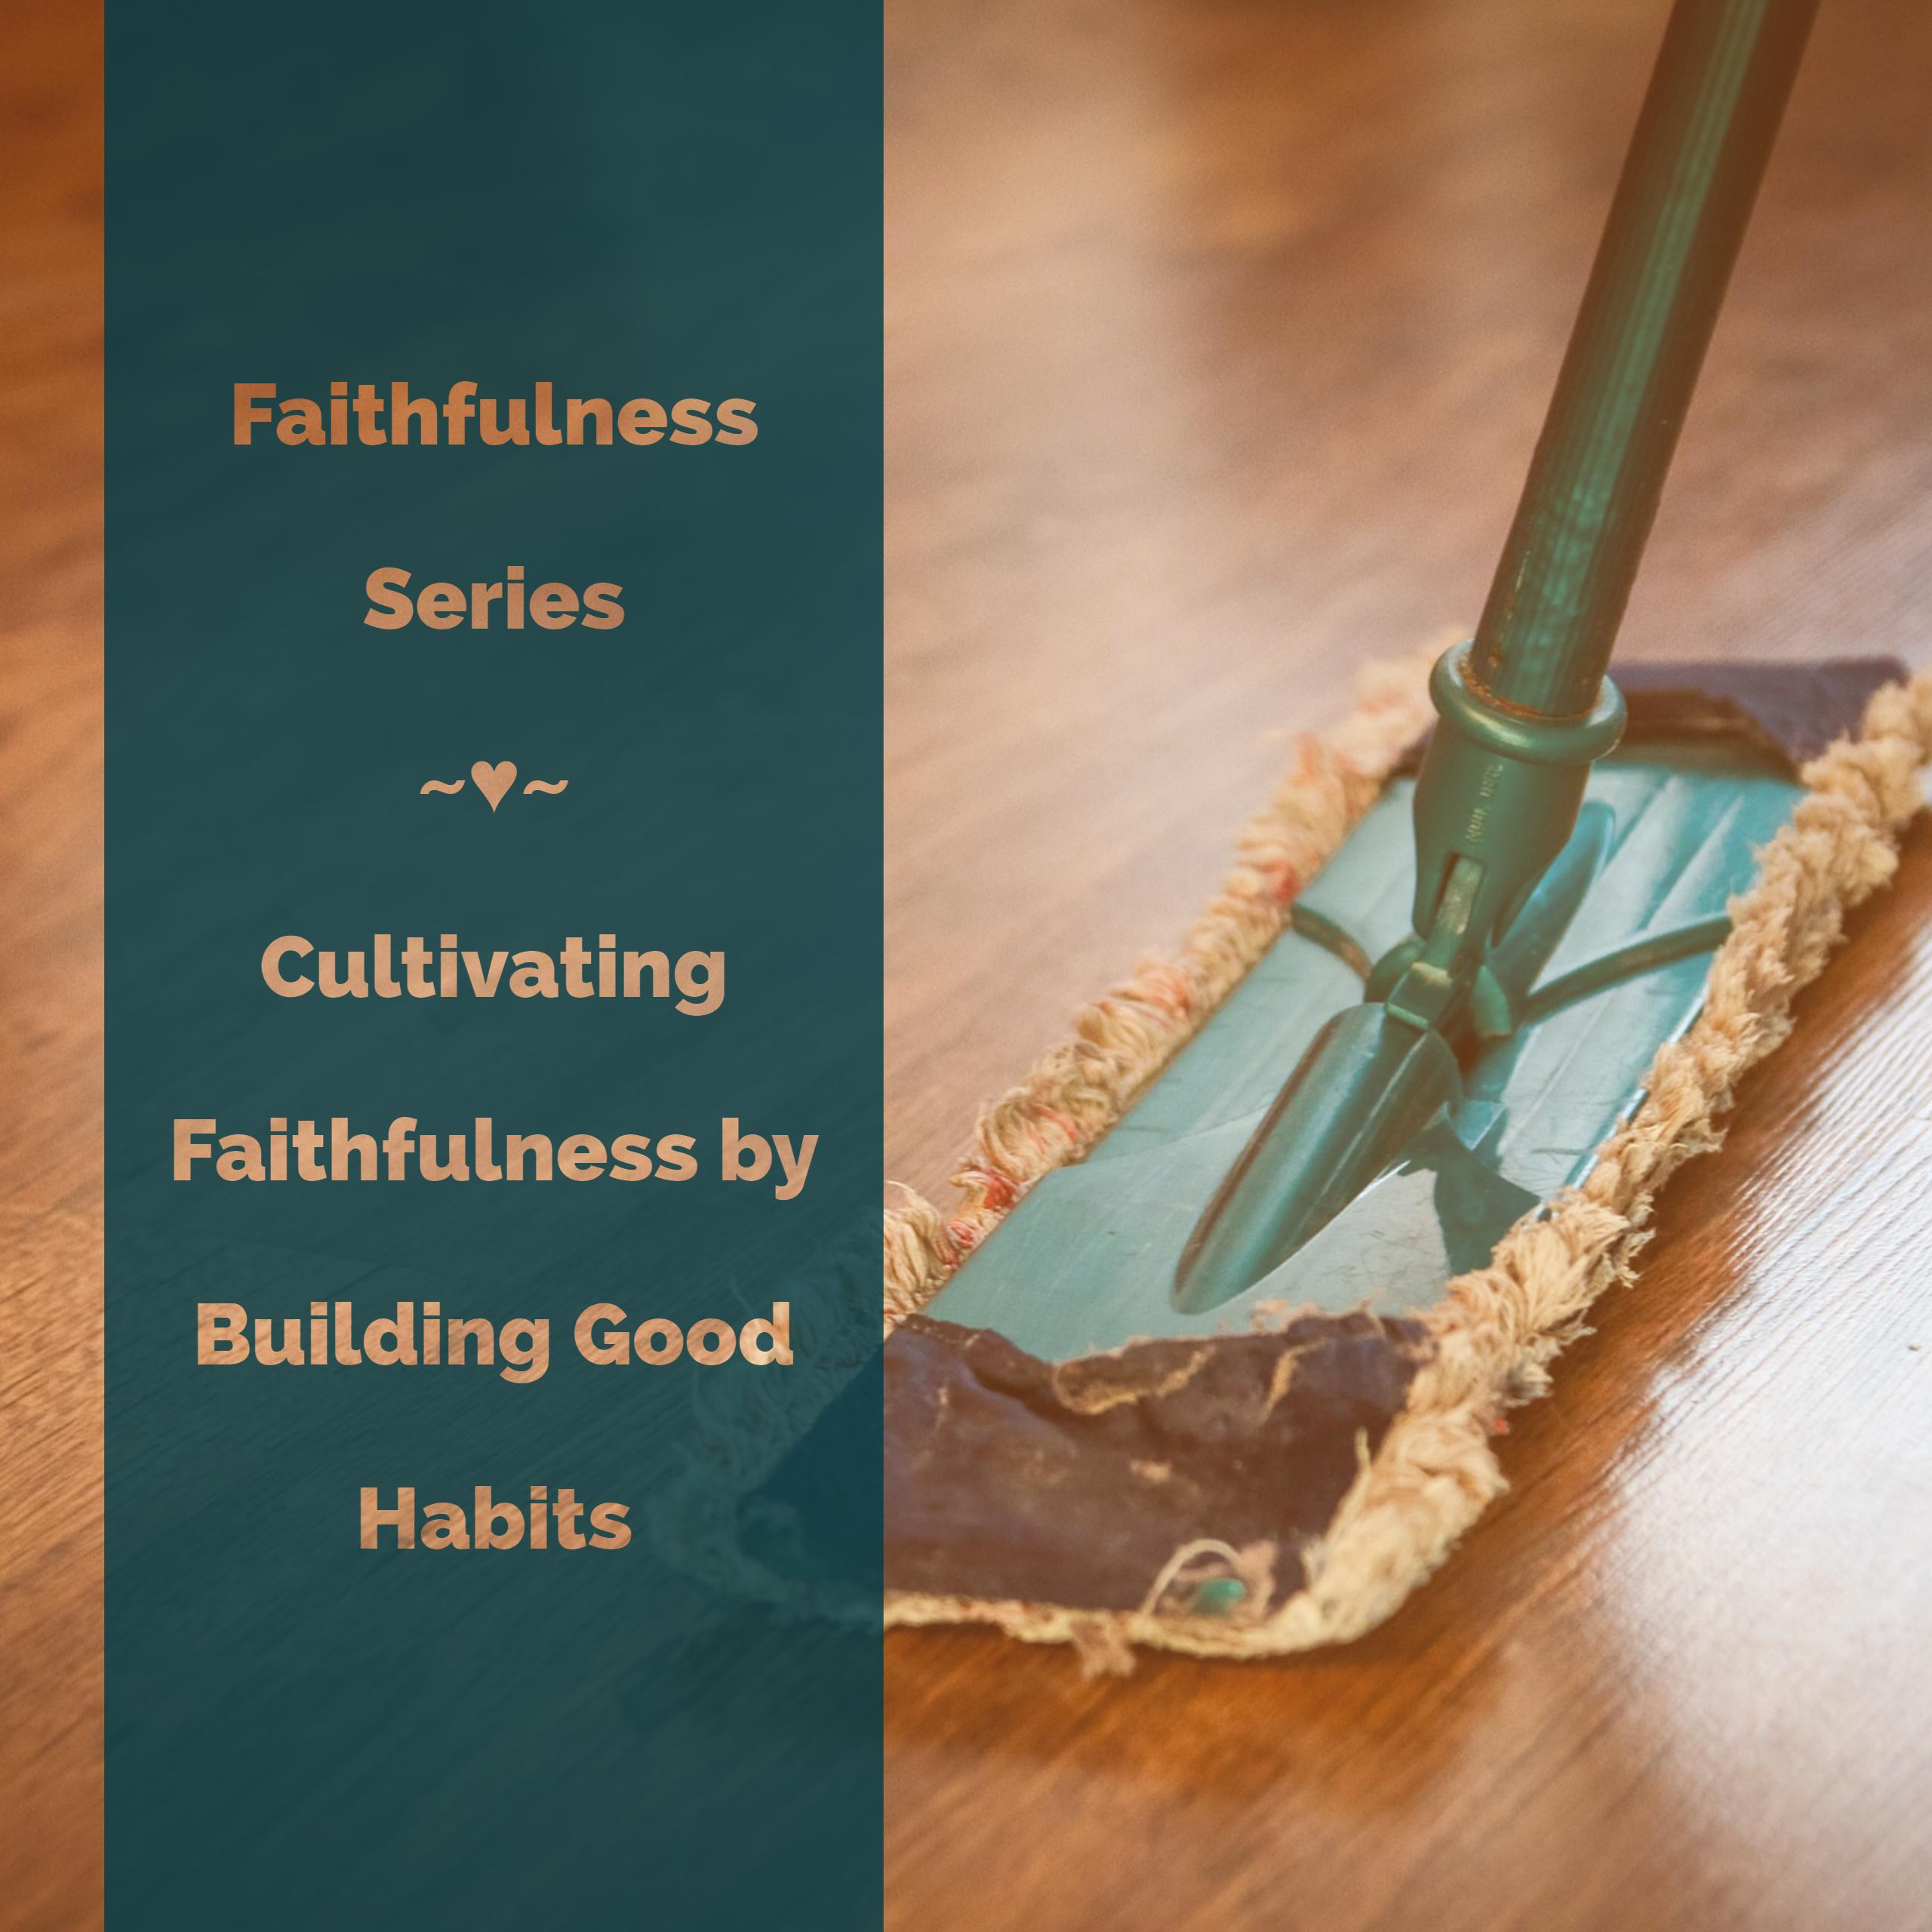 Cultivating Faithfulness by Building Good Habits